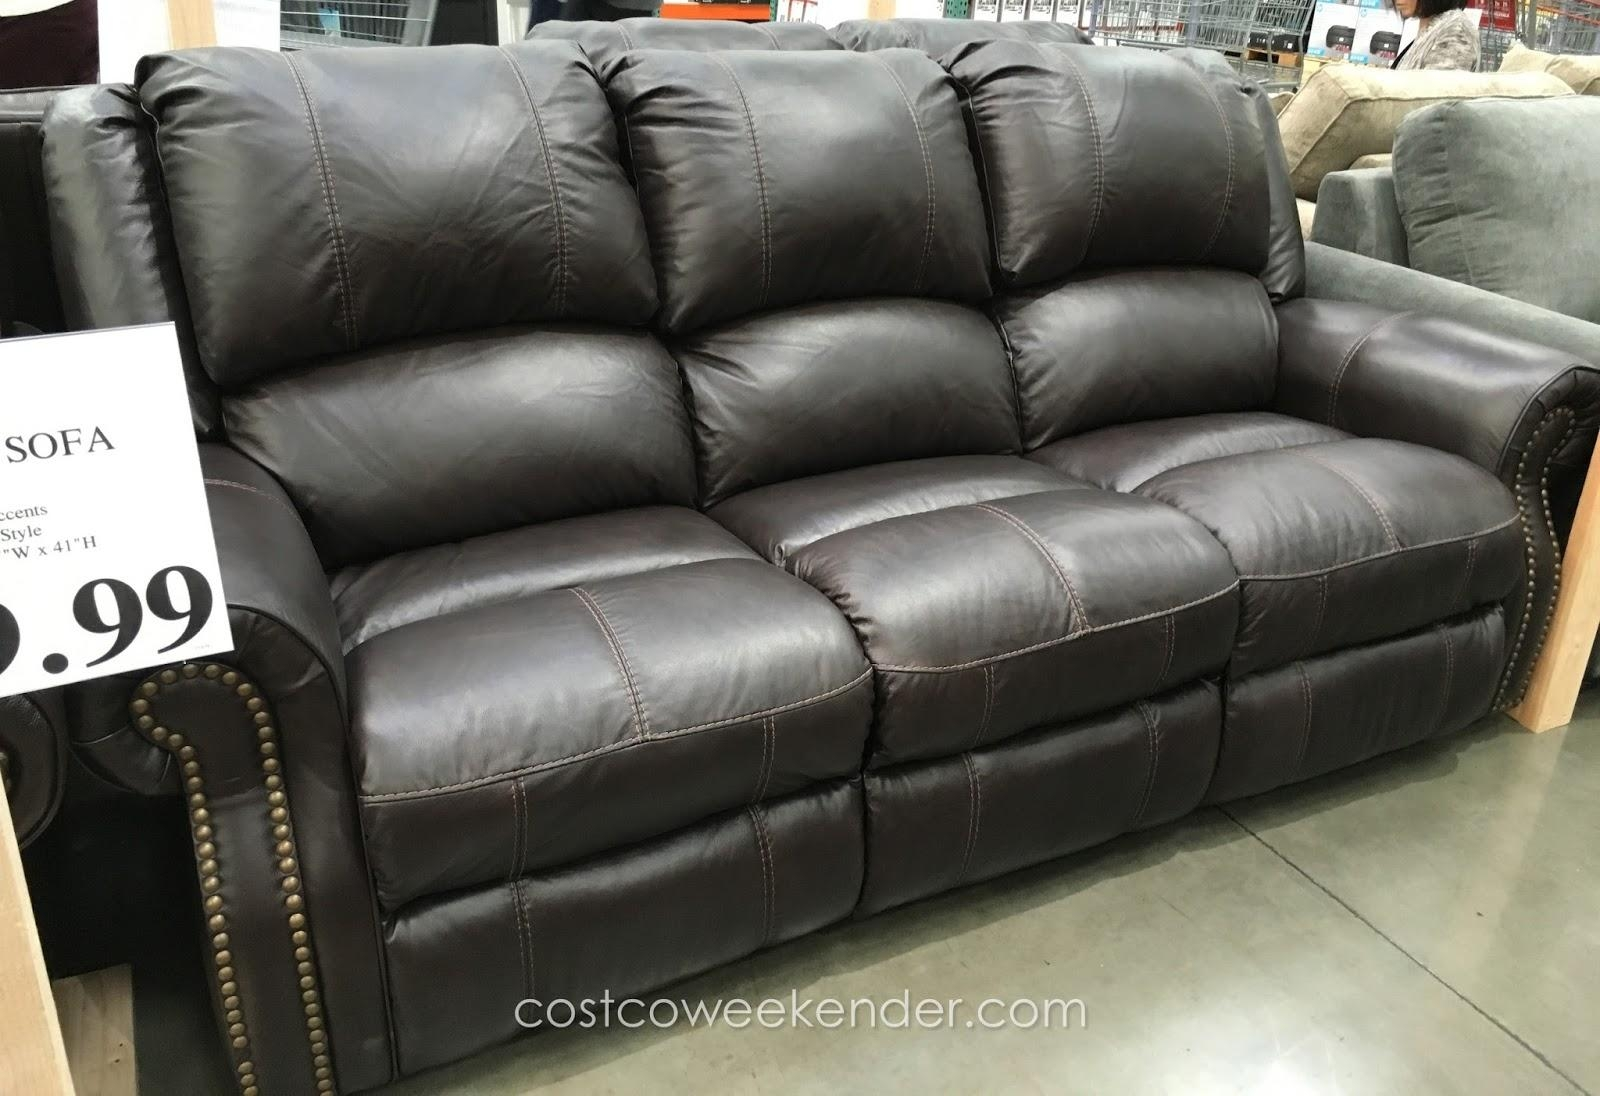 Sofas Center : Costco Pulaski Leather Reclining Sofa Berkline With Regard To Berkline Sofa Recliner (Image 18 of 20)